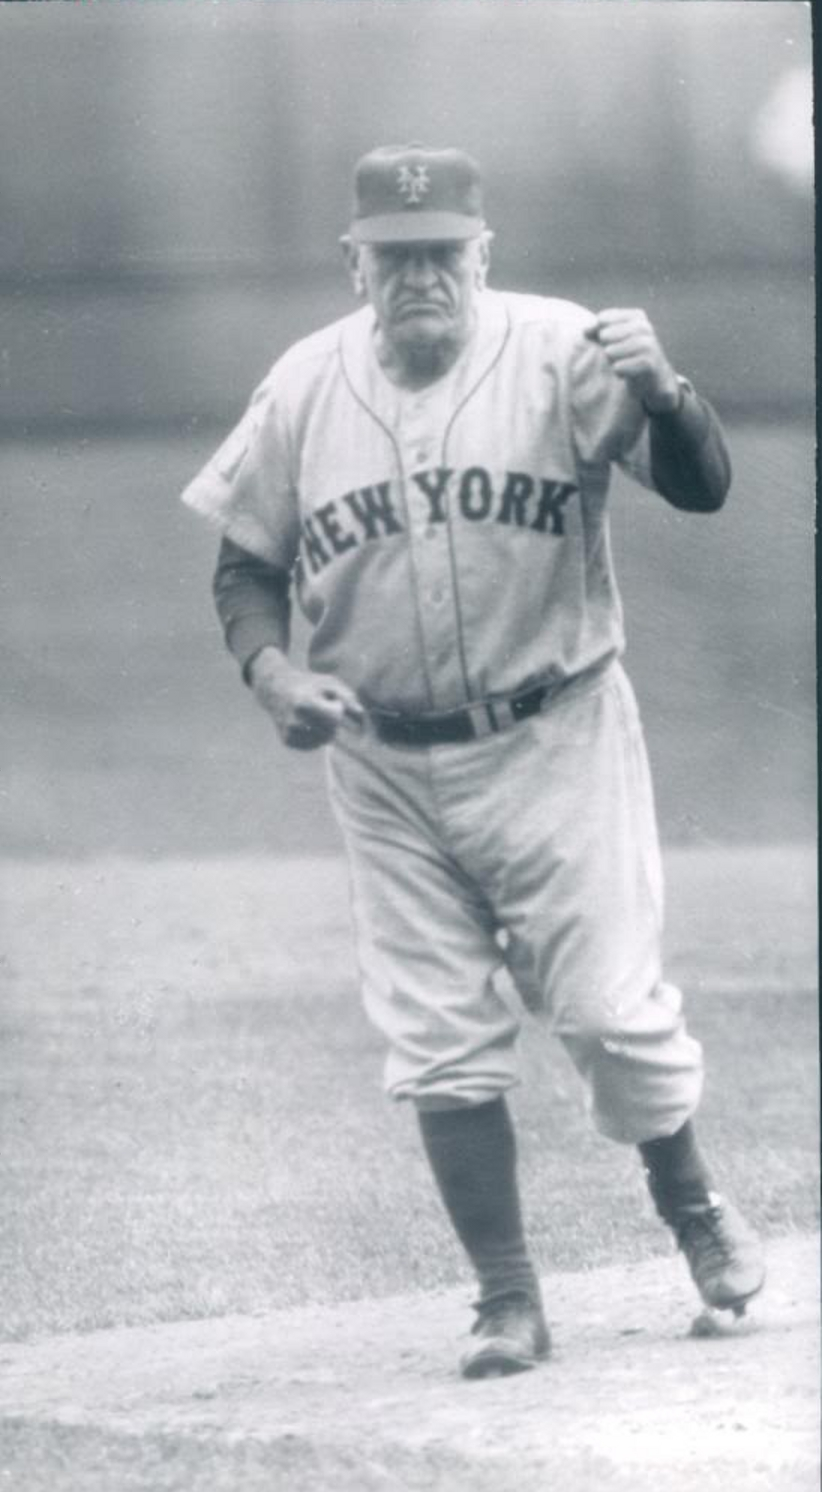 The New York Mets 50th Anniversary: A Look Back At Casey Stengel